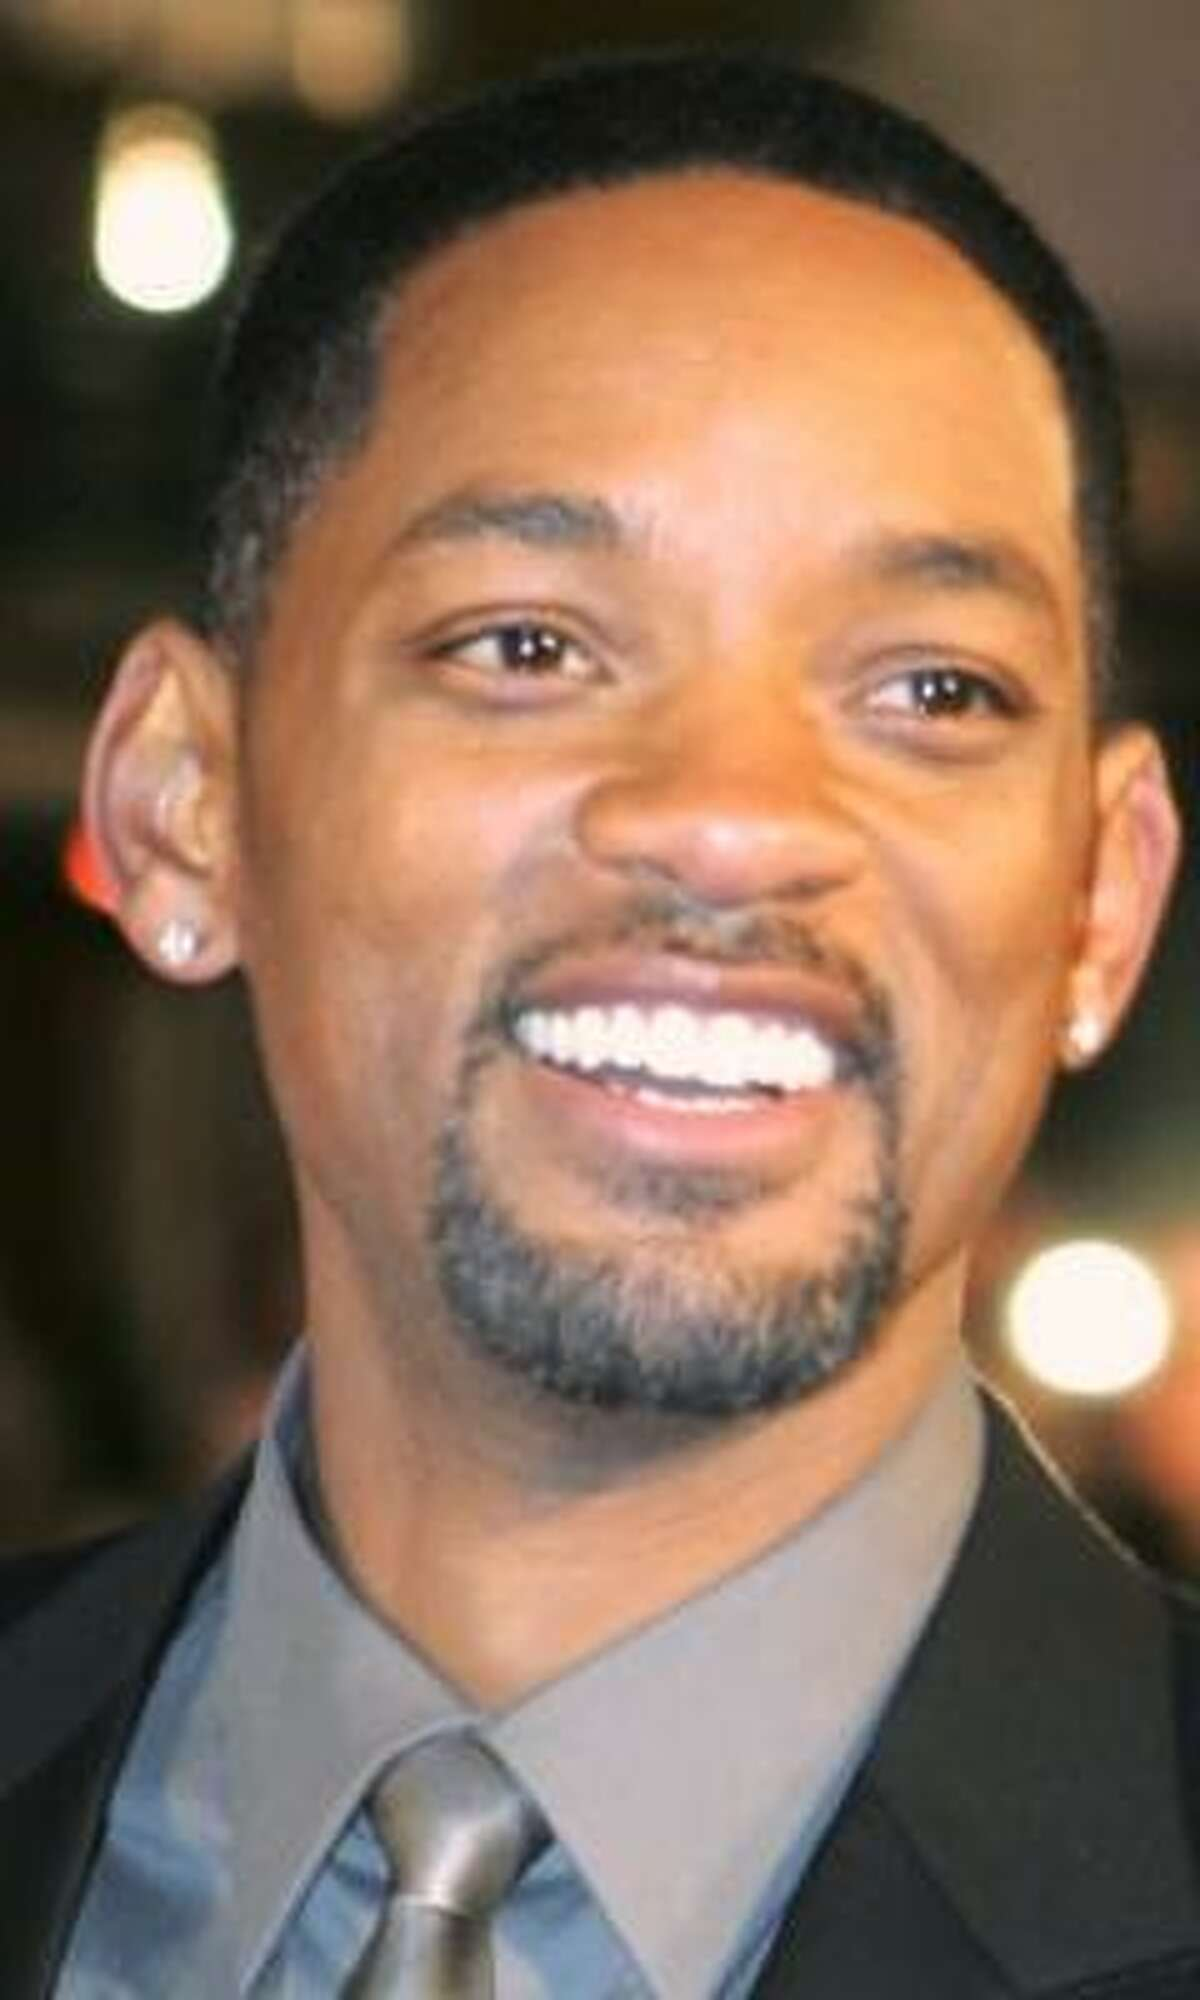 Will Smith's comments about Hitler drew fire.